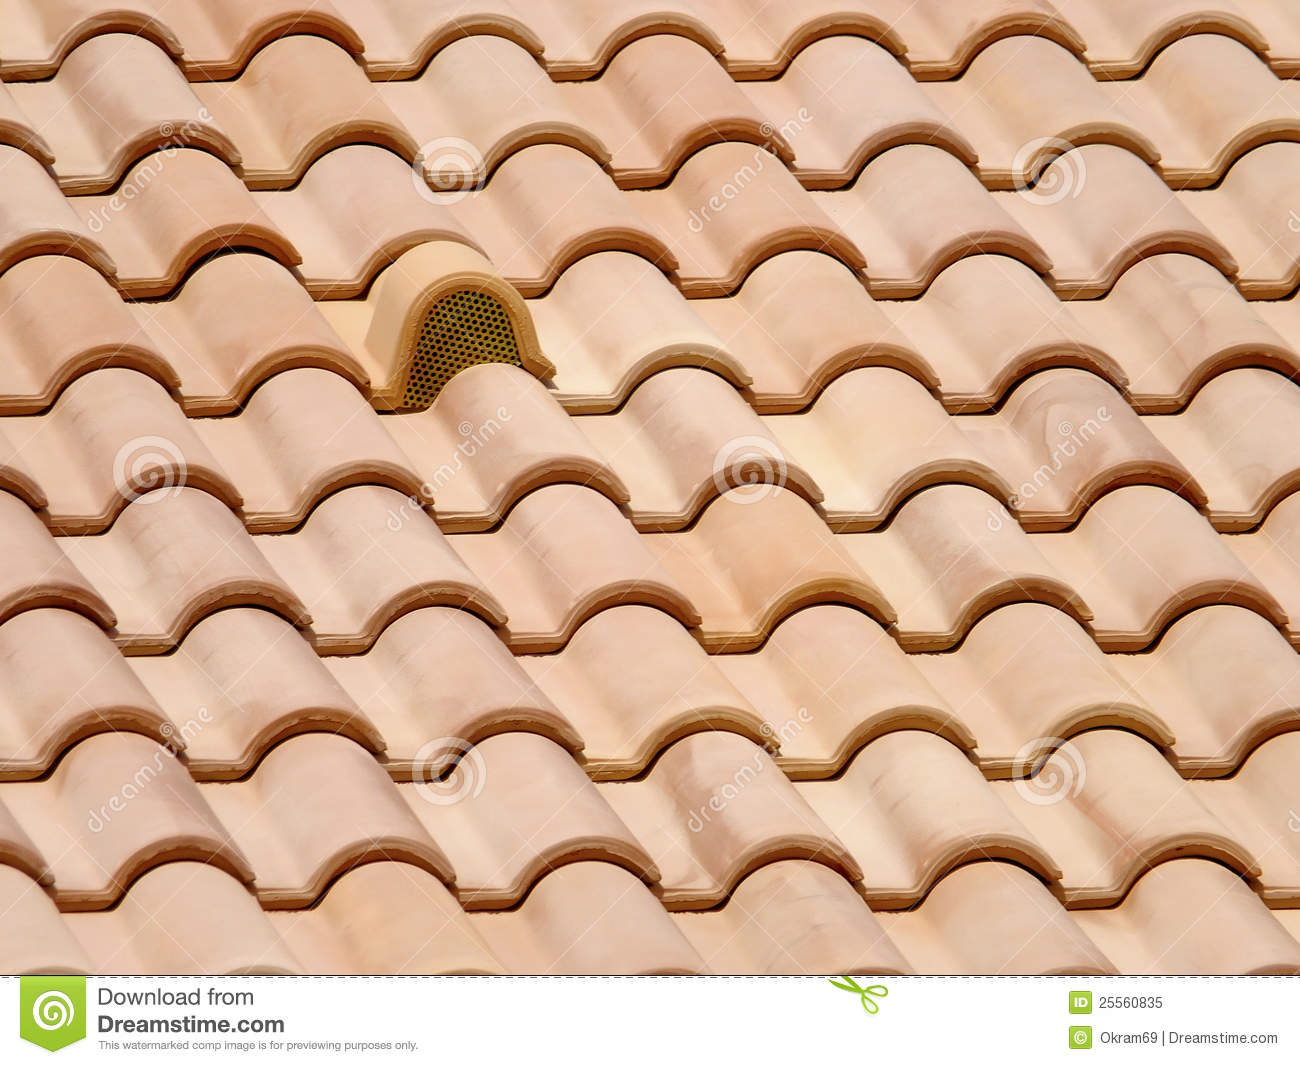 Clay roof tiles royalty free stock photo image 25560835 Spanish clay tile